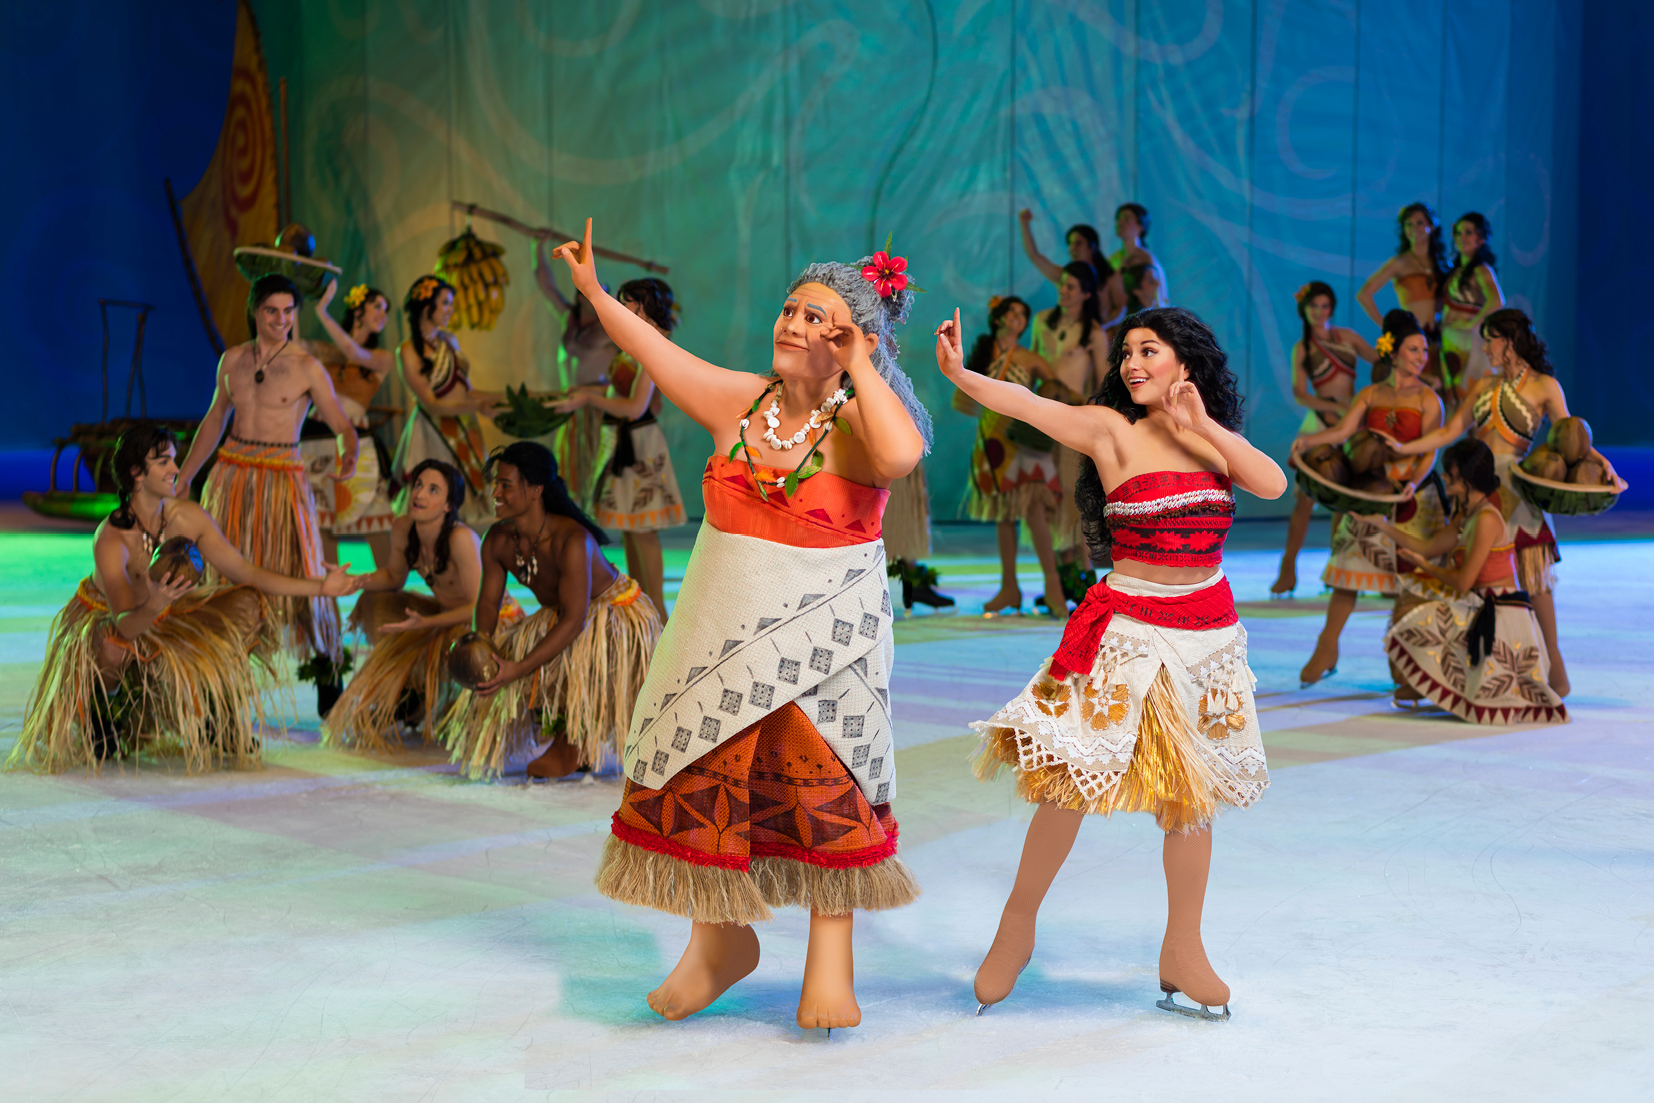 Moana and family singing and dancing on ice